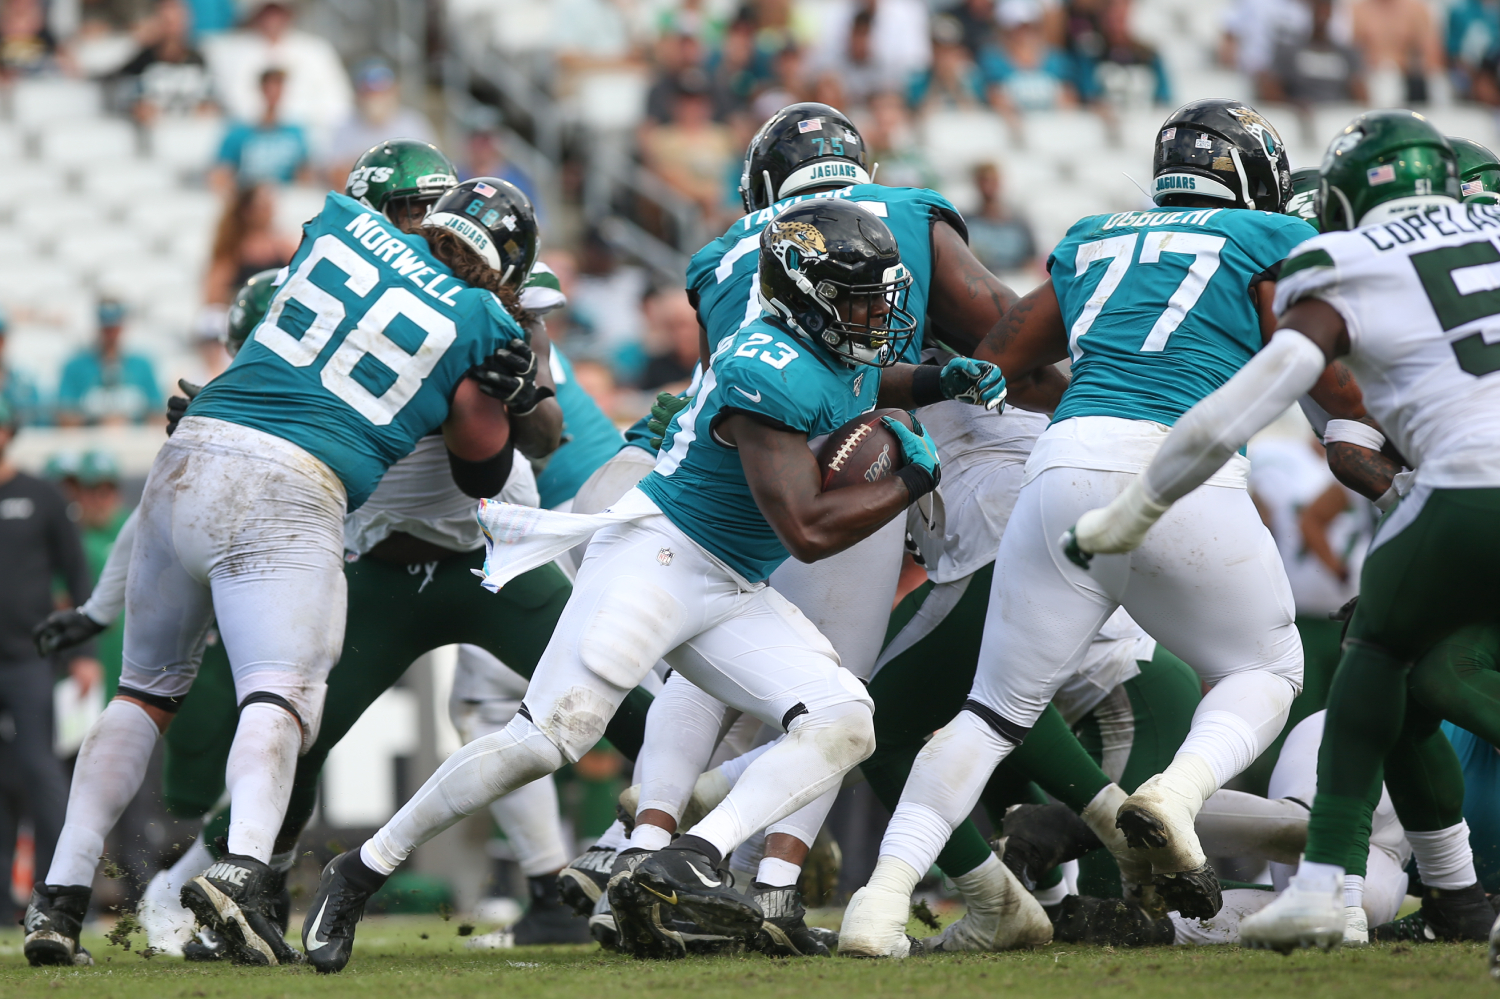 Many NFL players have been hit by COVID-19. The Jacksonville Jaguars have a player who has arguably been hit the hardest.